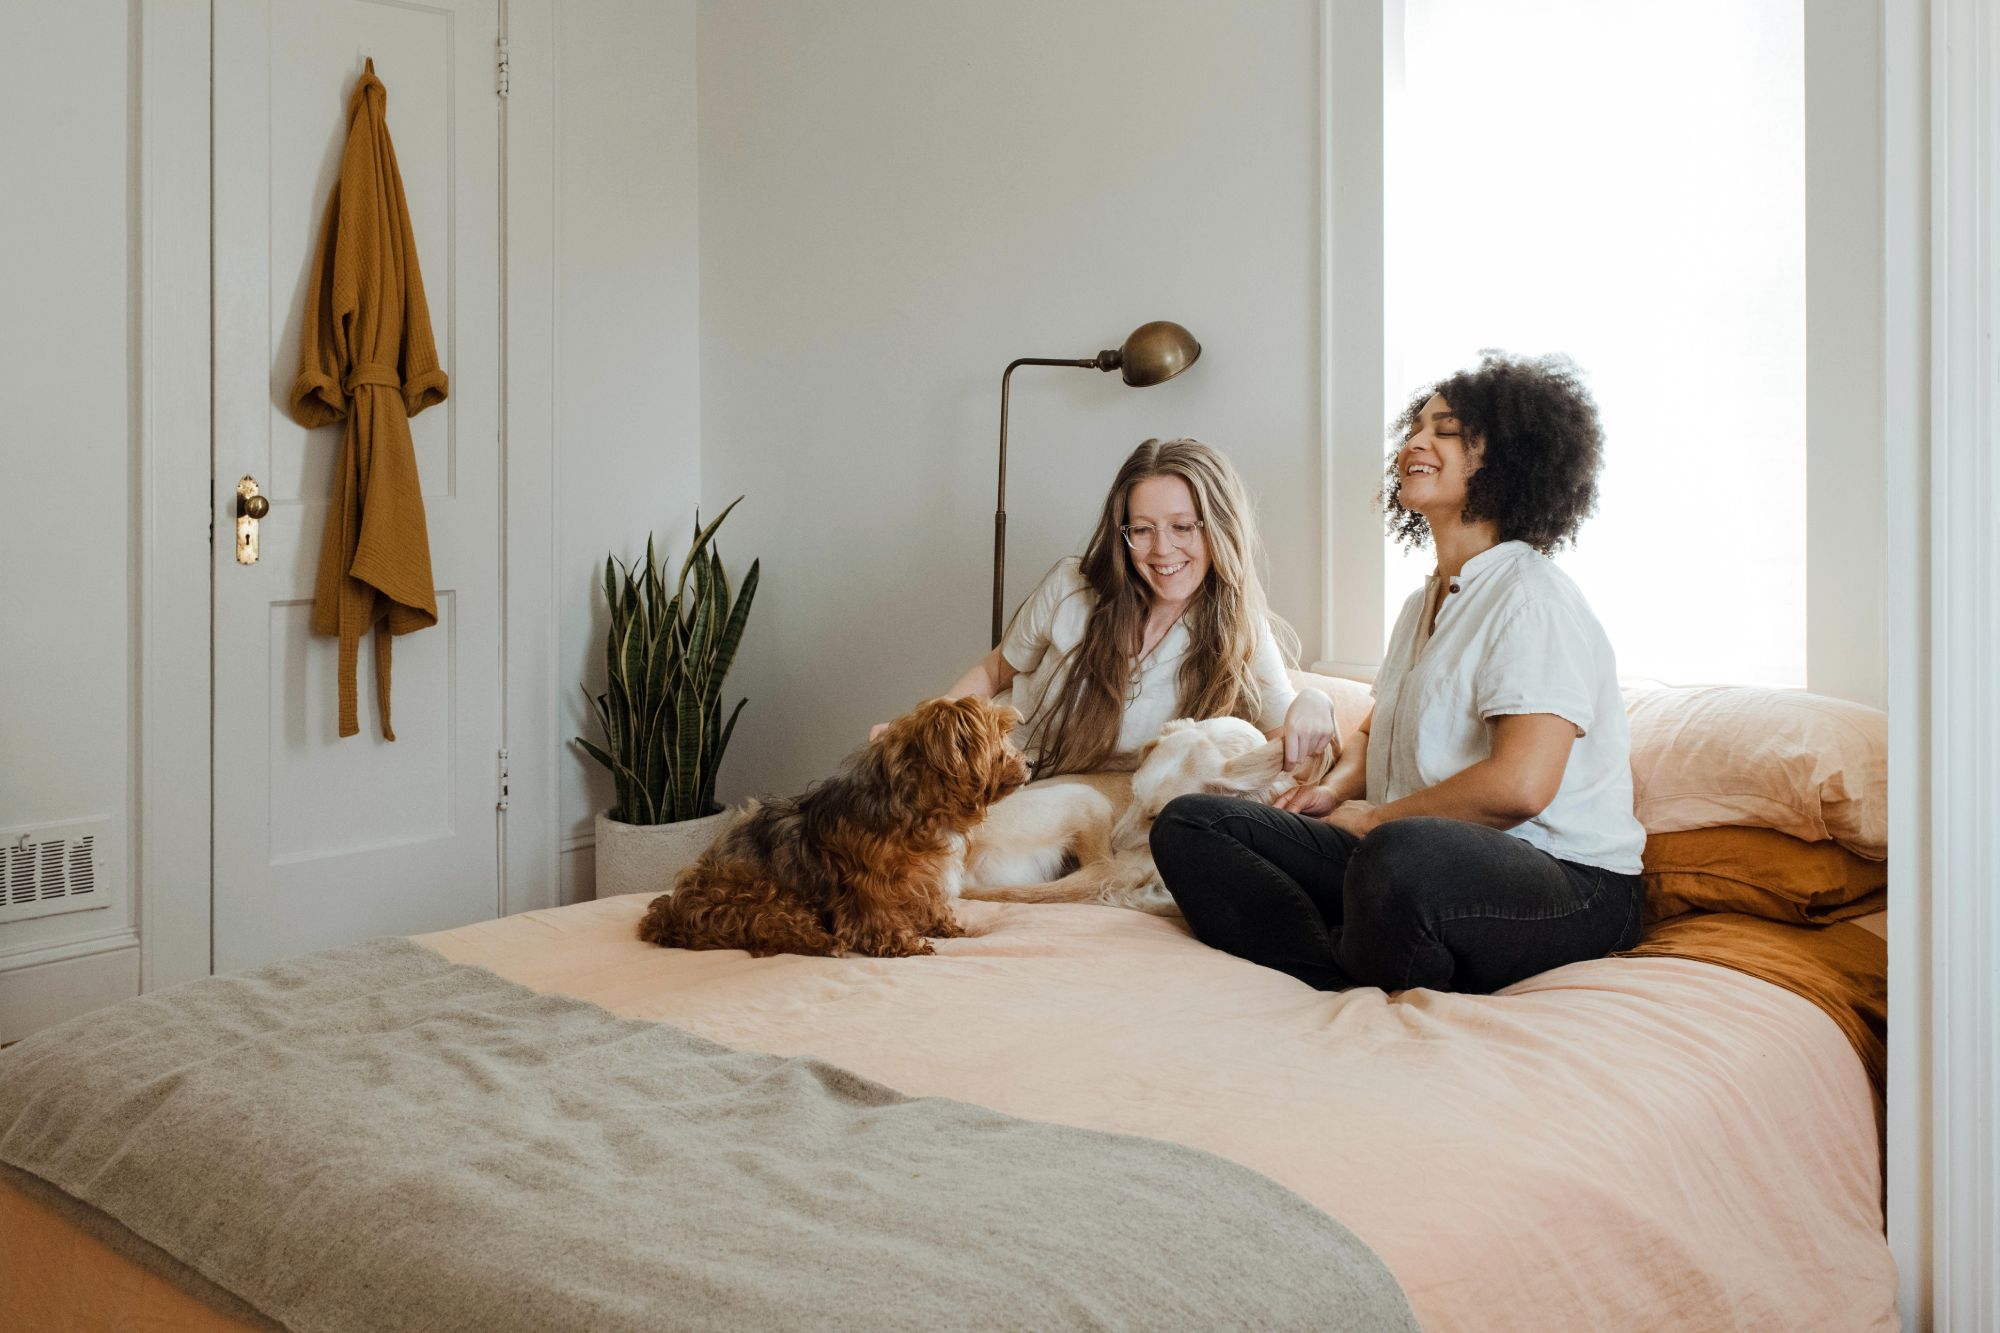 Women petting dog on bed; bamboo floor lamps